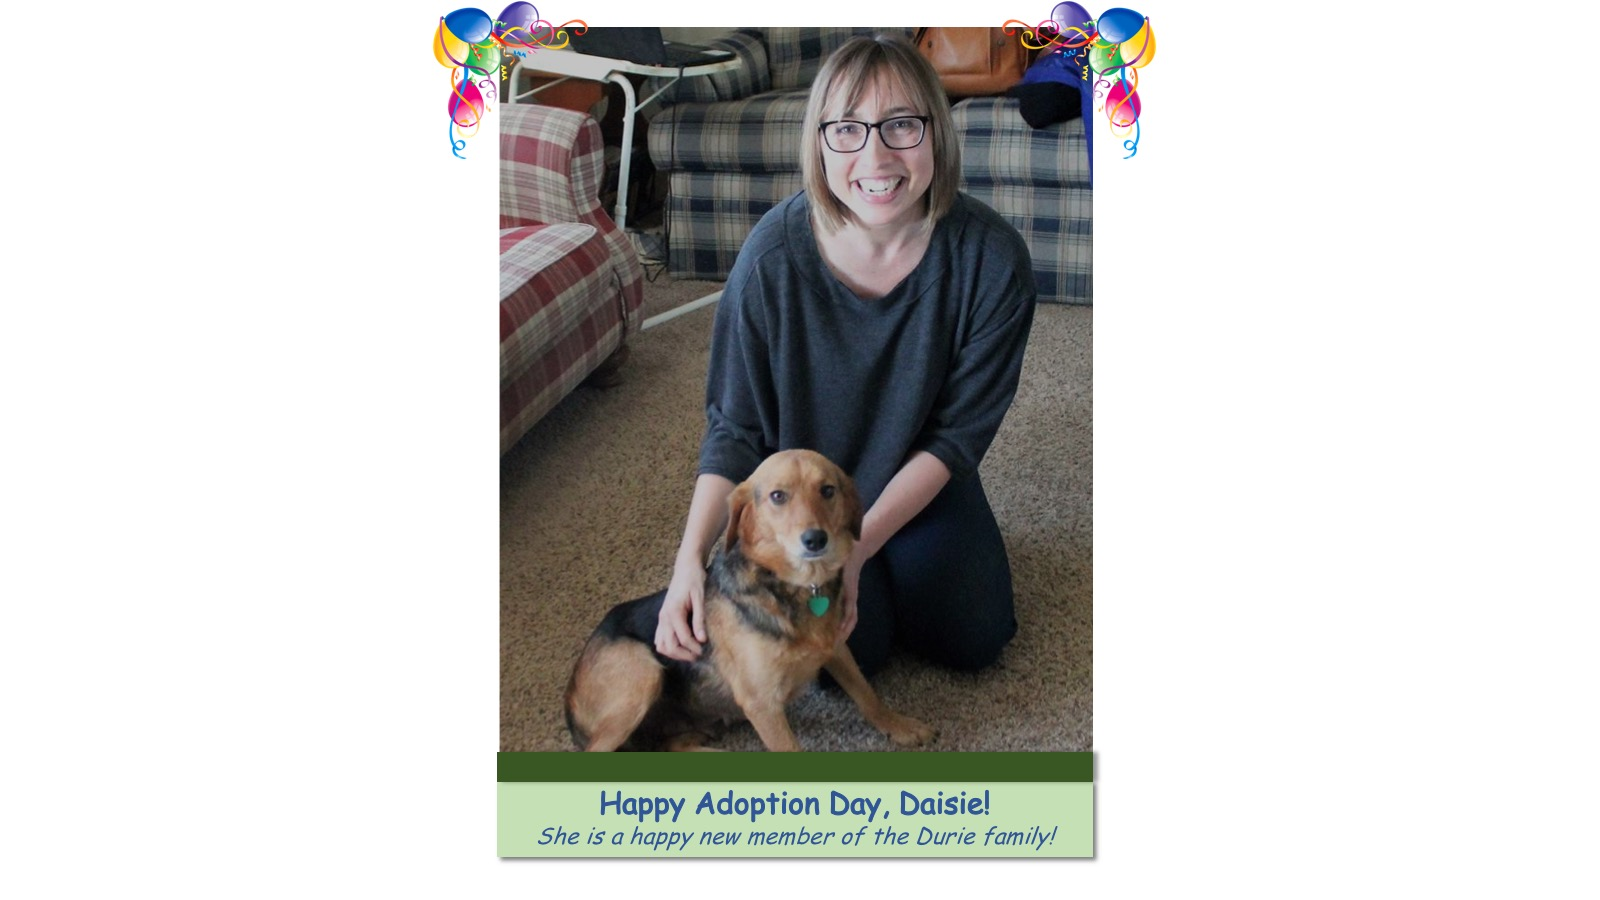 Daisie_Adoption_Photo_2018.jpg